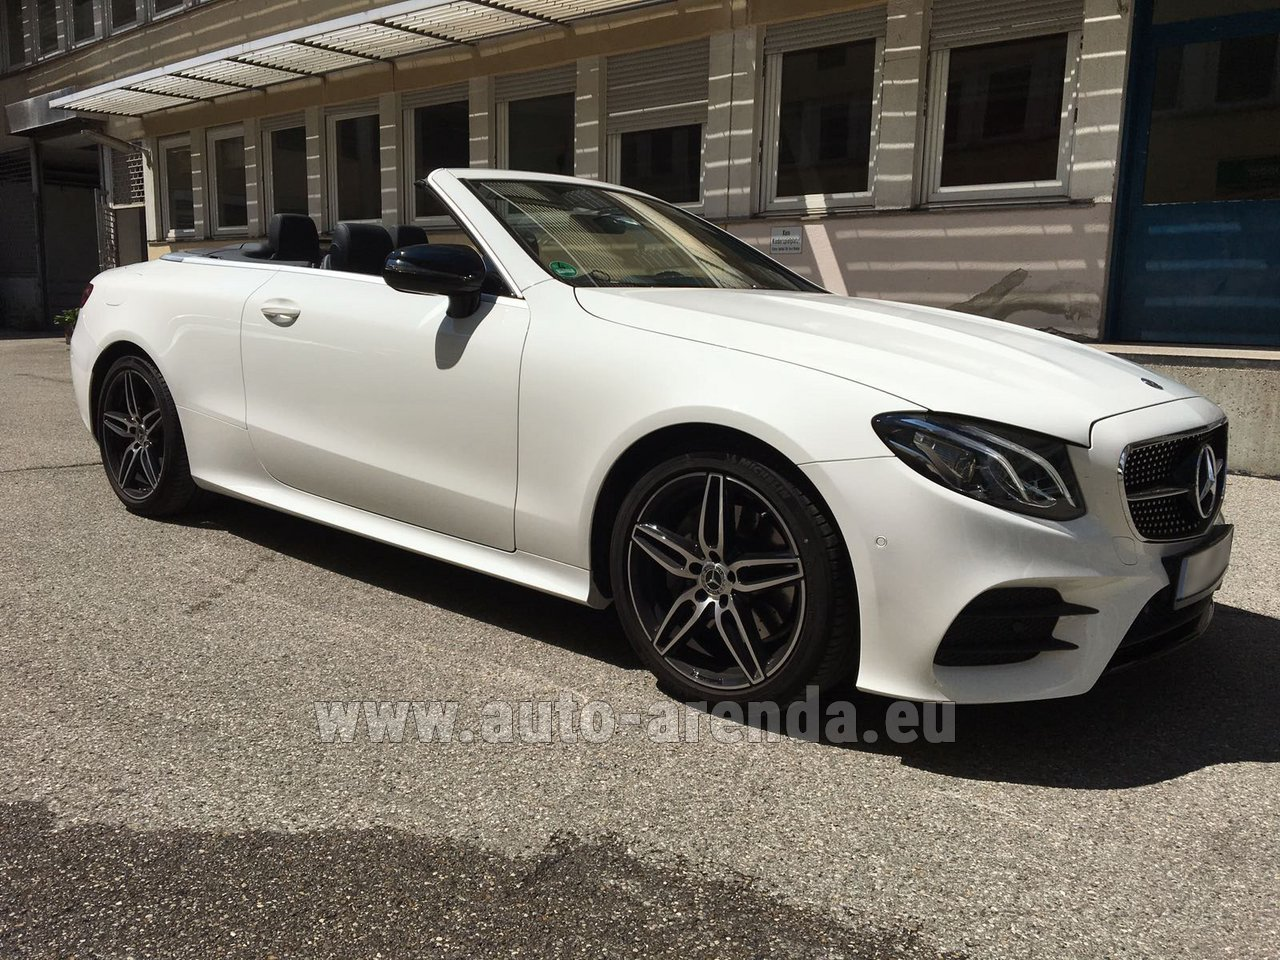 rent the mercedes benz e class e 200 cabrio car in faro. Black Bedroom Furniture Sets. Home Design Ideas